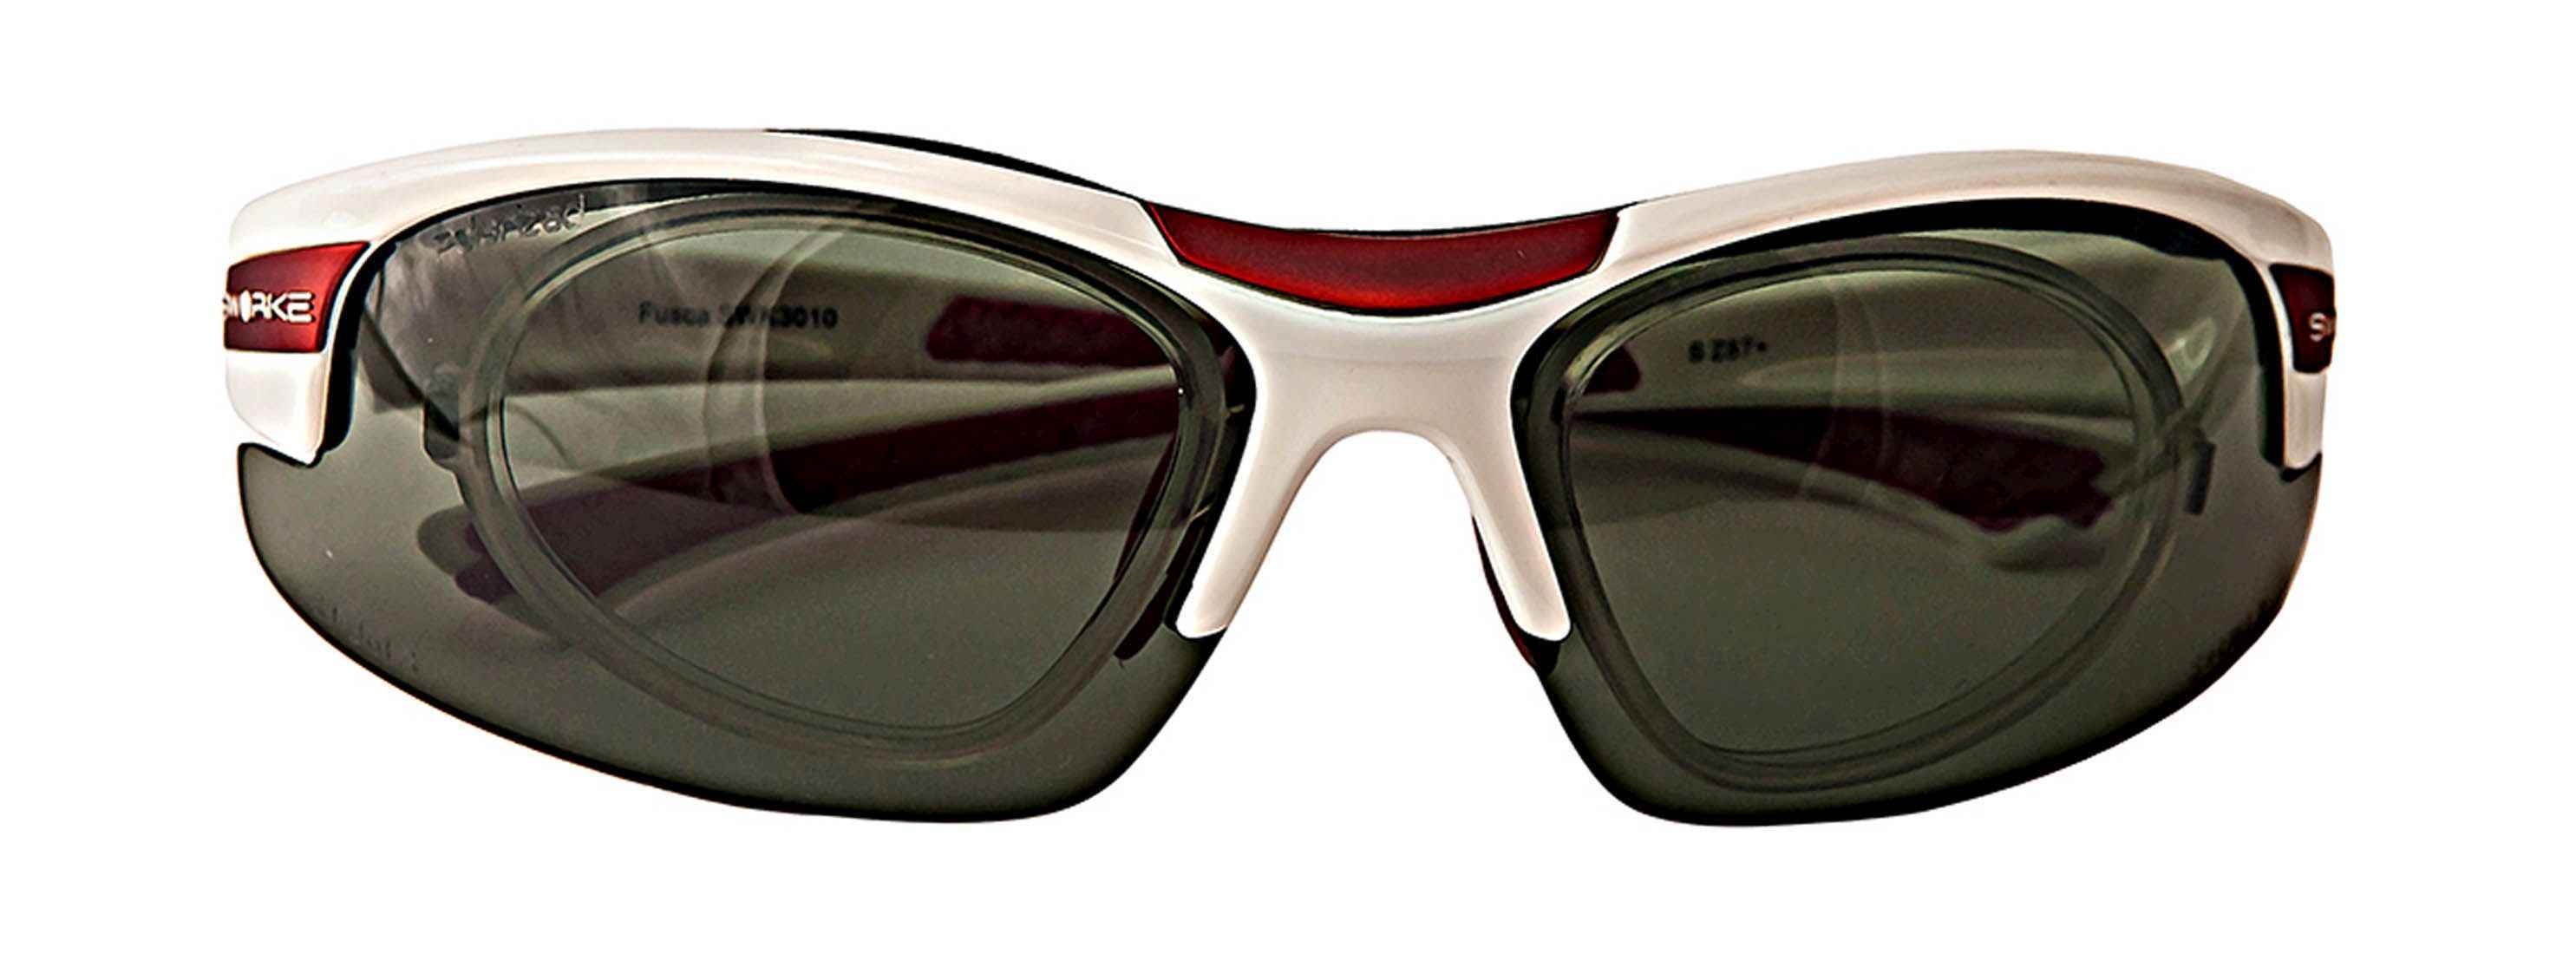 Sworke sunglasses 4363s 1 269 2970x1100